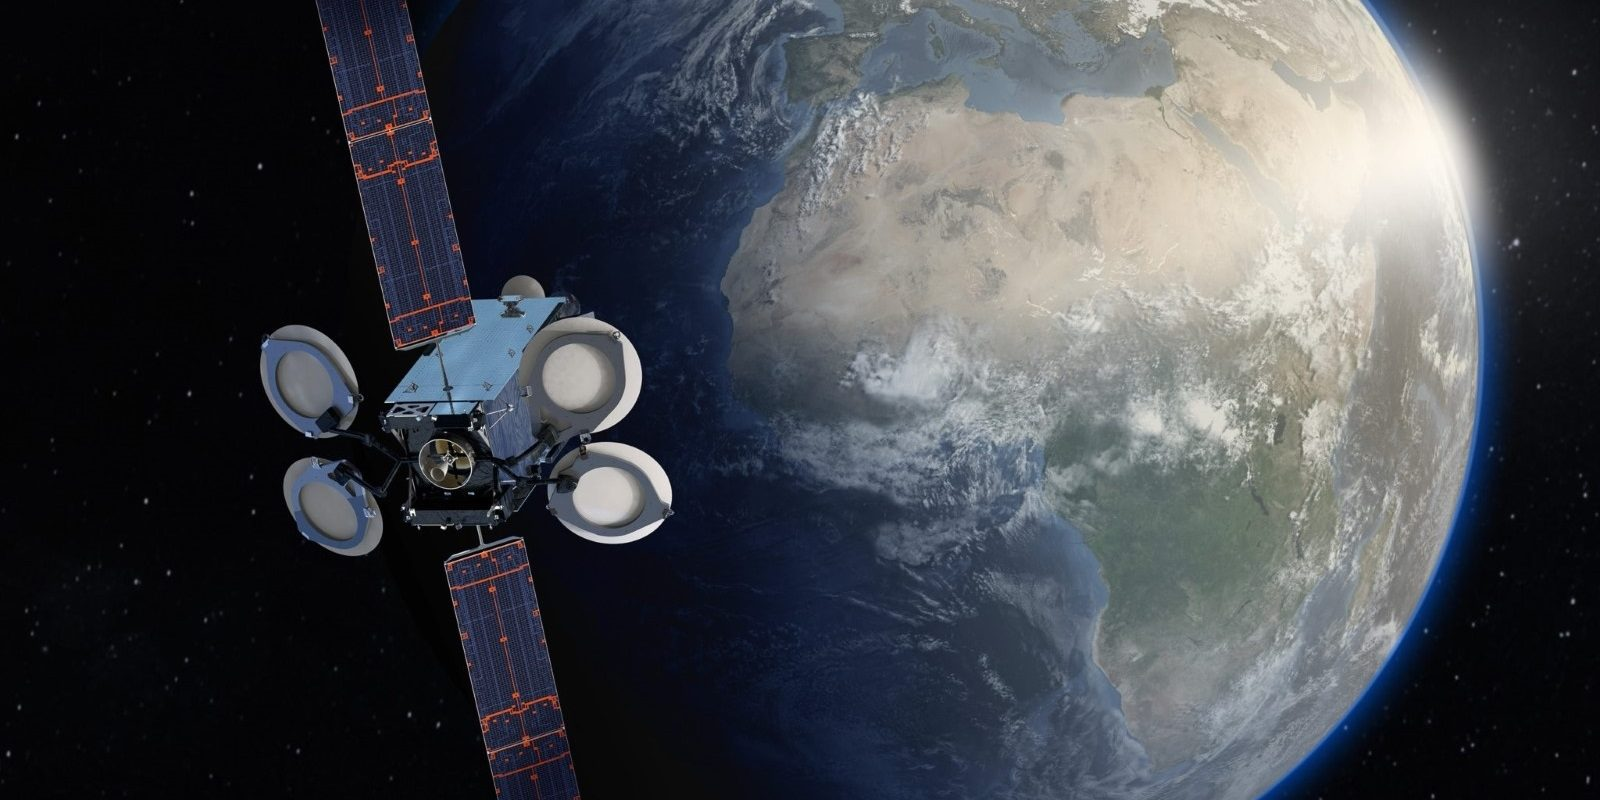 Amos-17 / BSS-702MP satellite in Earth orbit